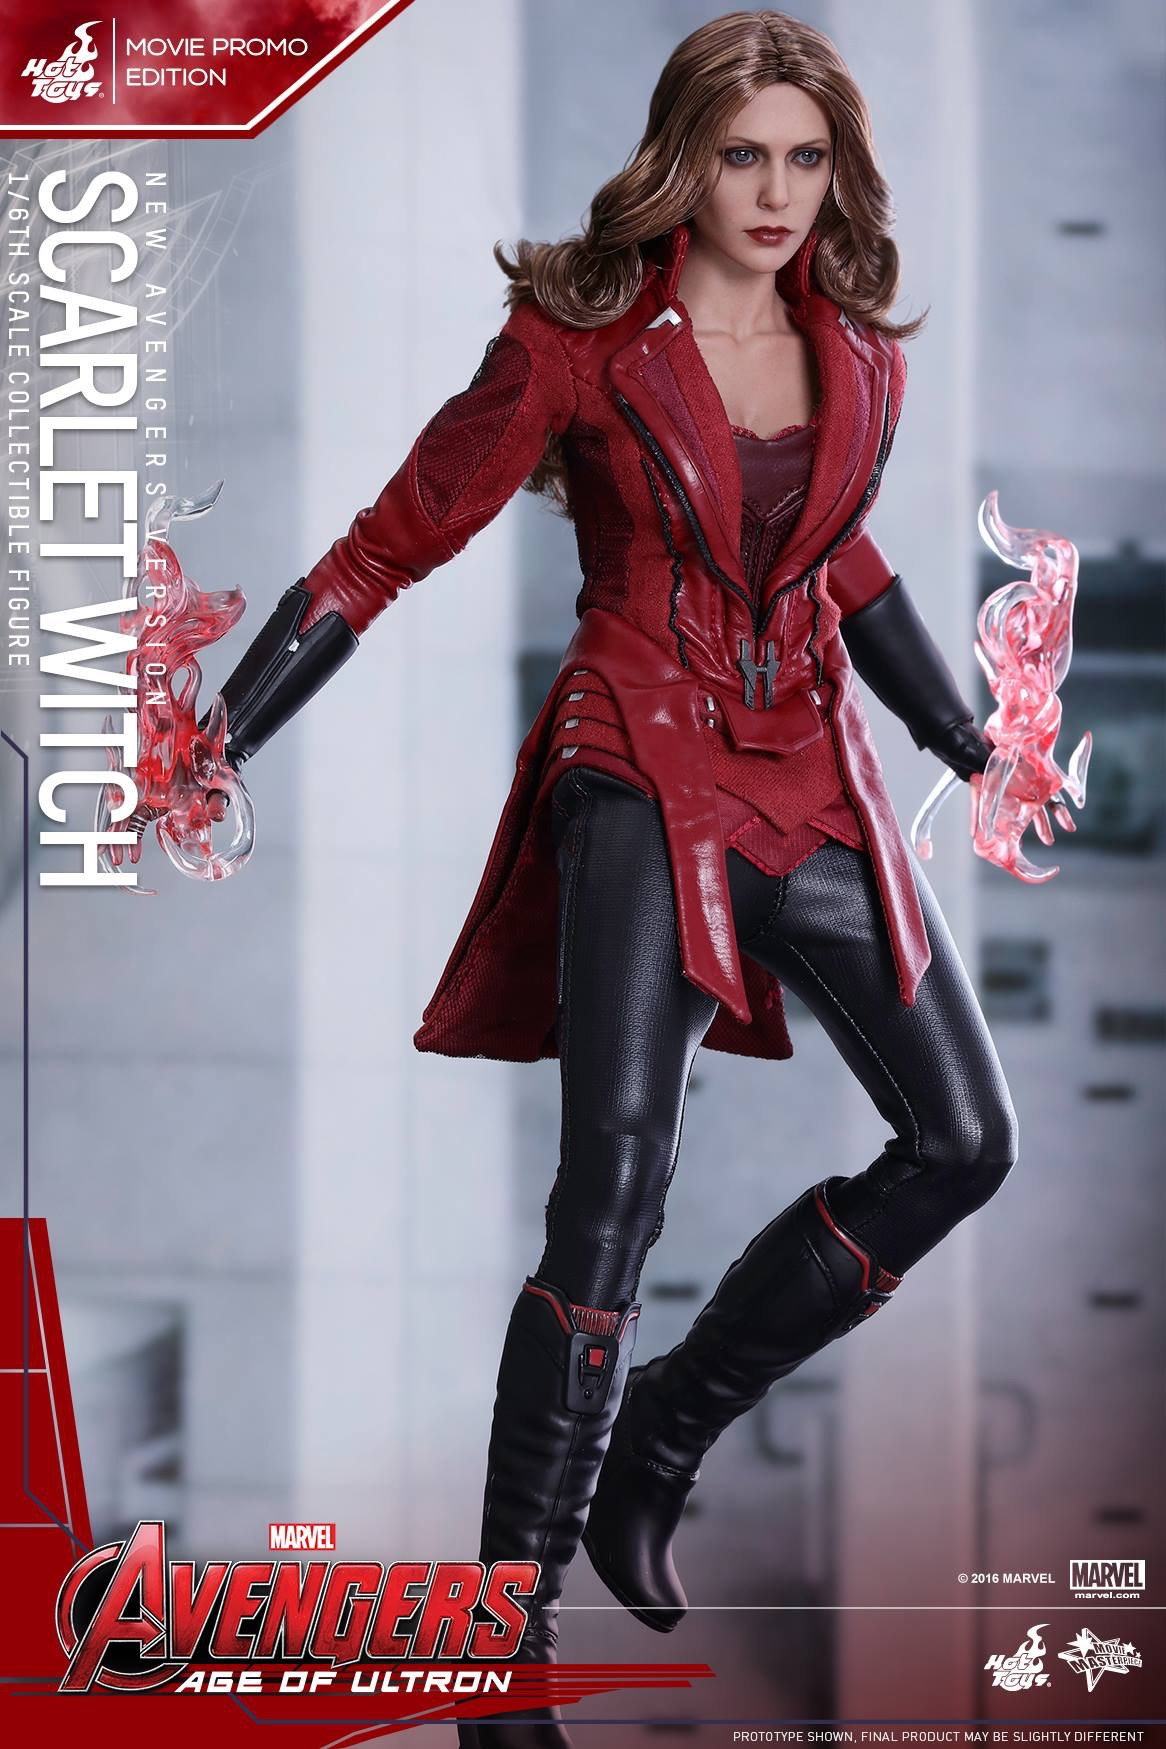 AVENGERS 2 : AGE OF ULTRON - SCARLET WITCH (MM$357) 160415024942747780